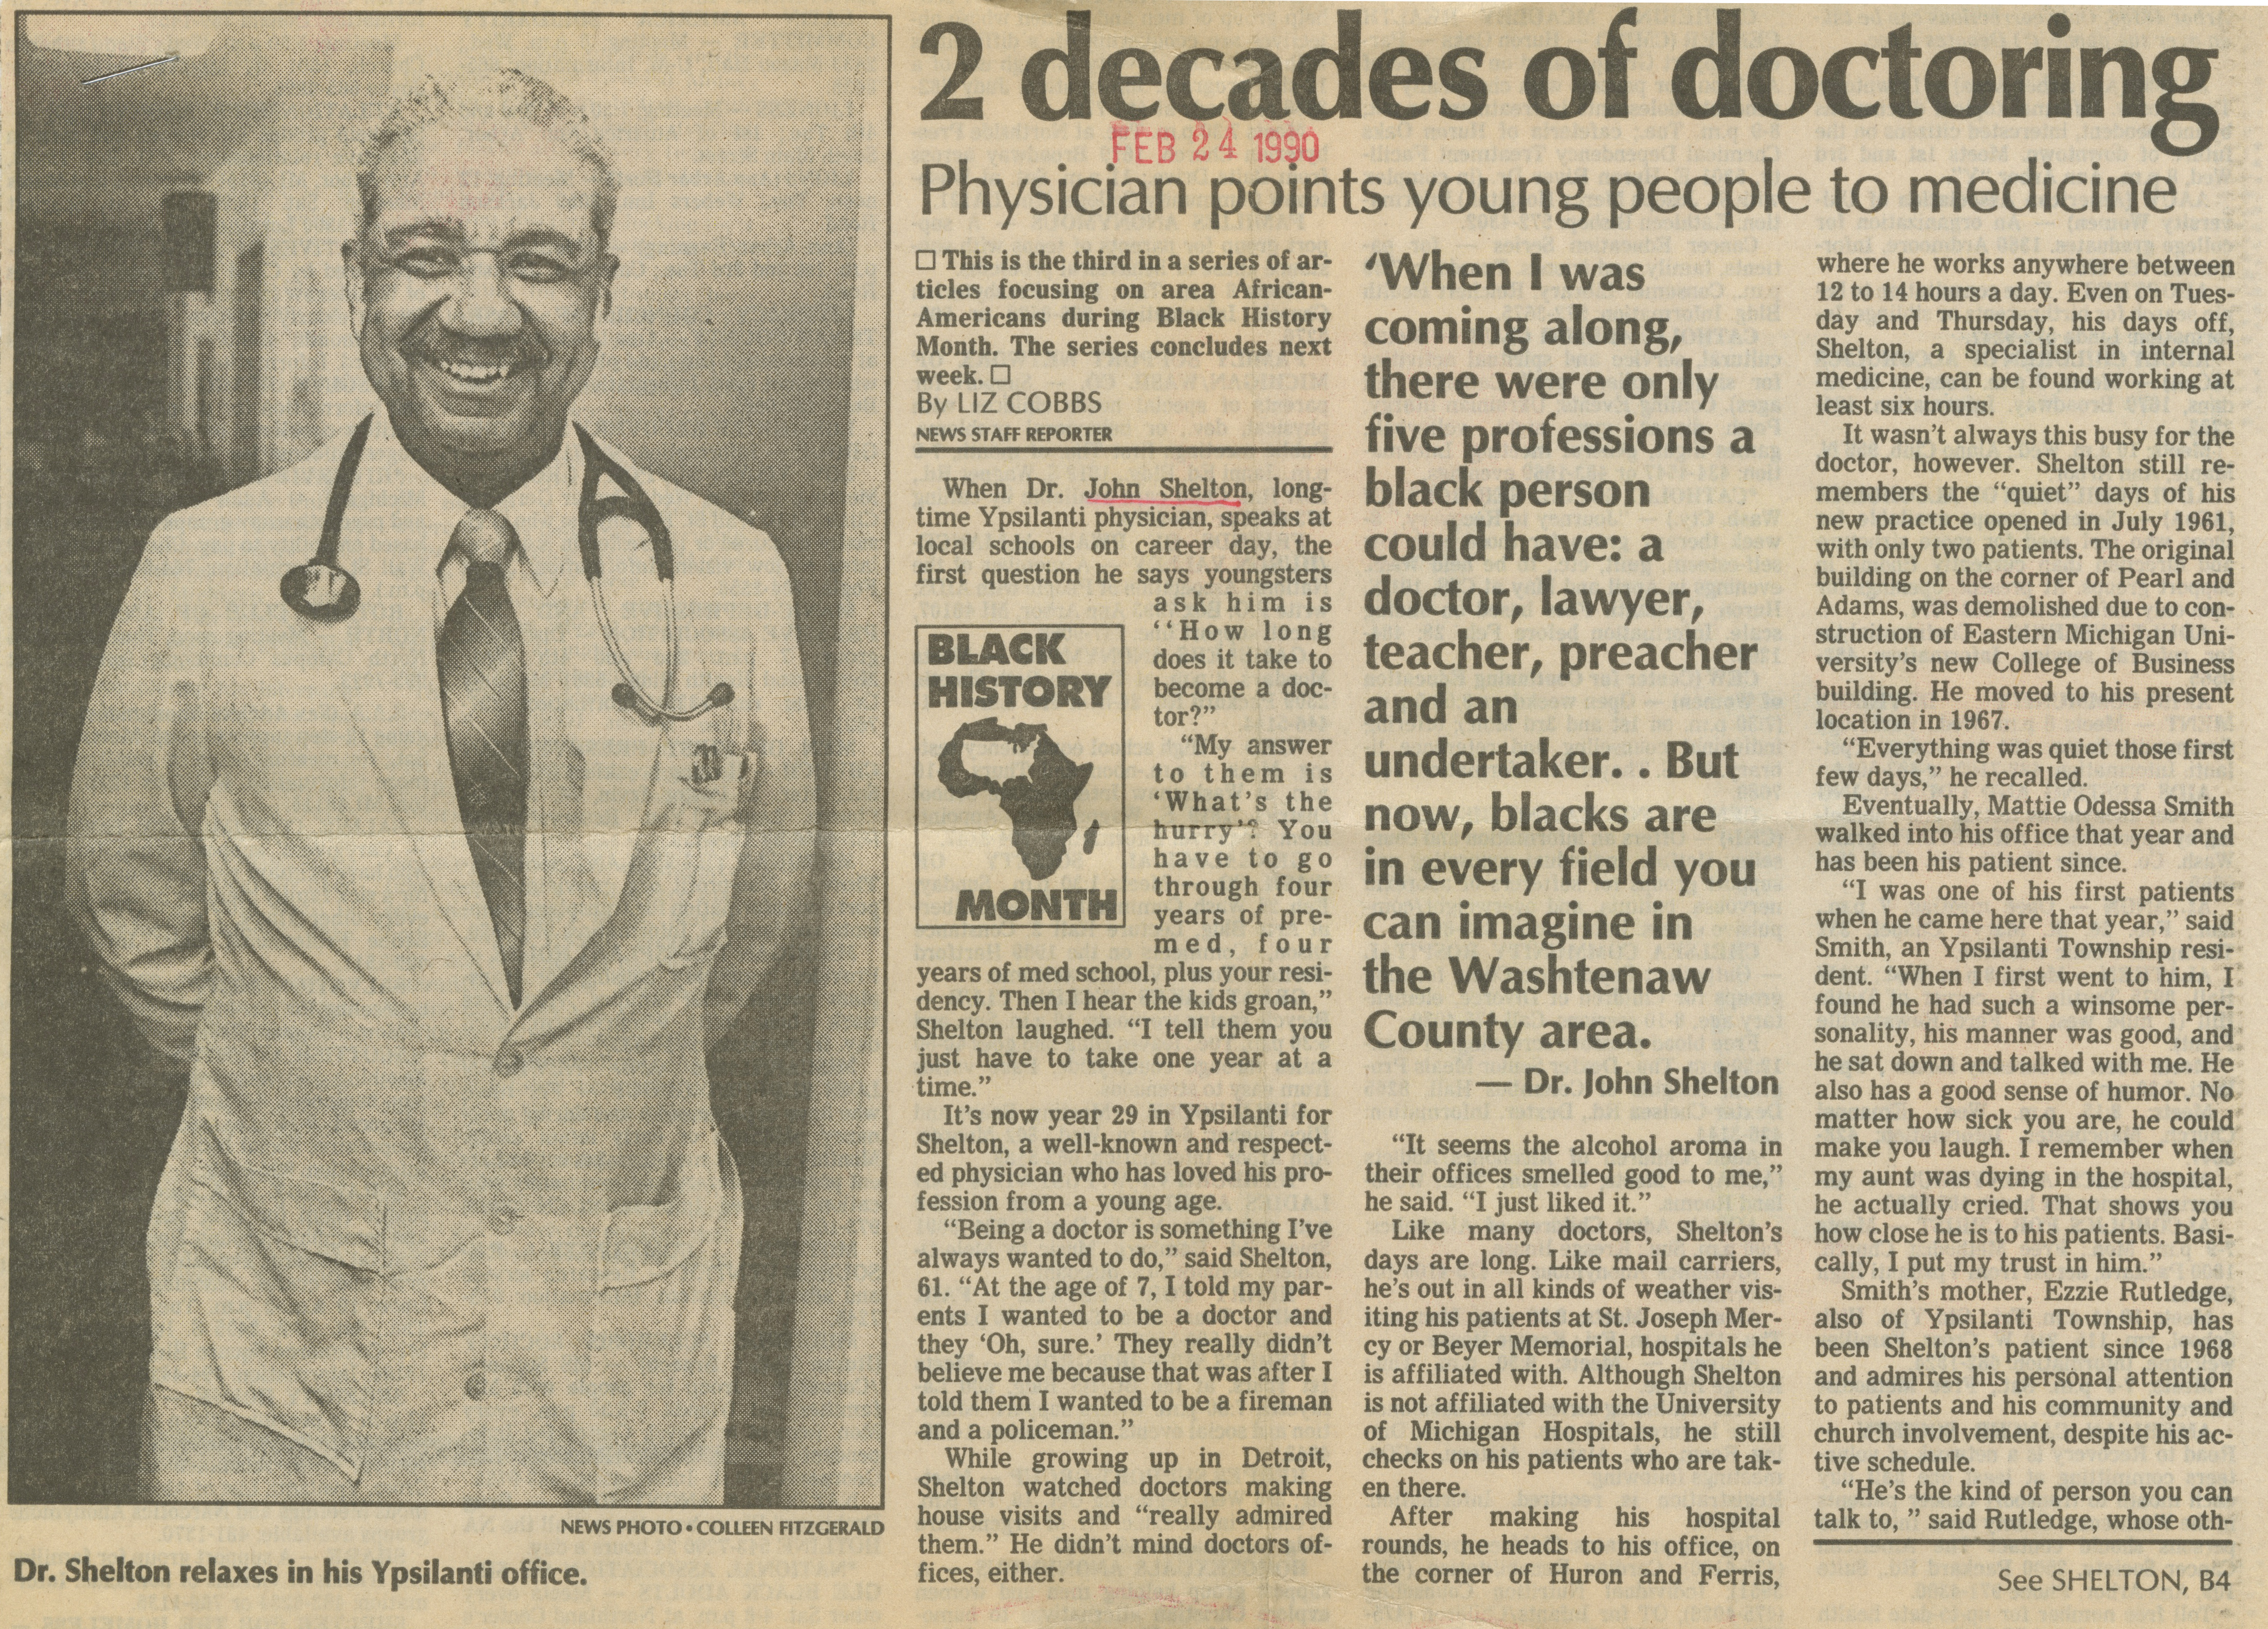 2 Decades Of Doctoring image